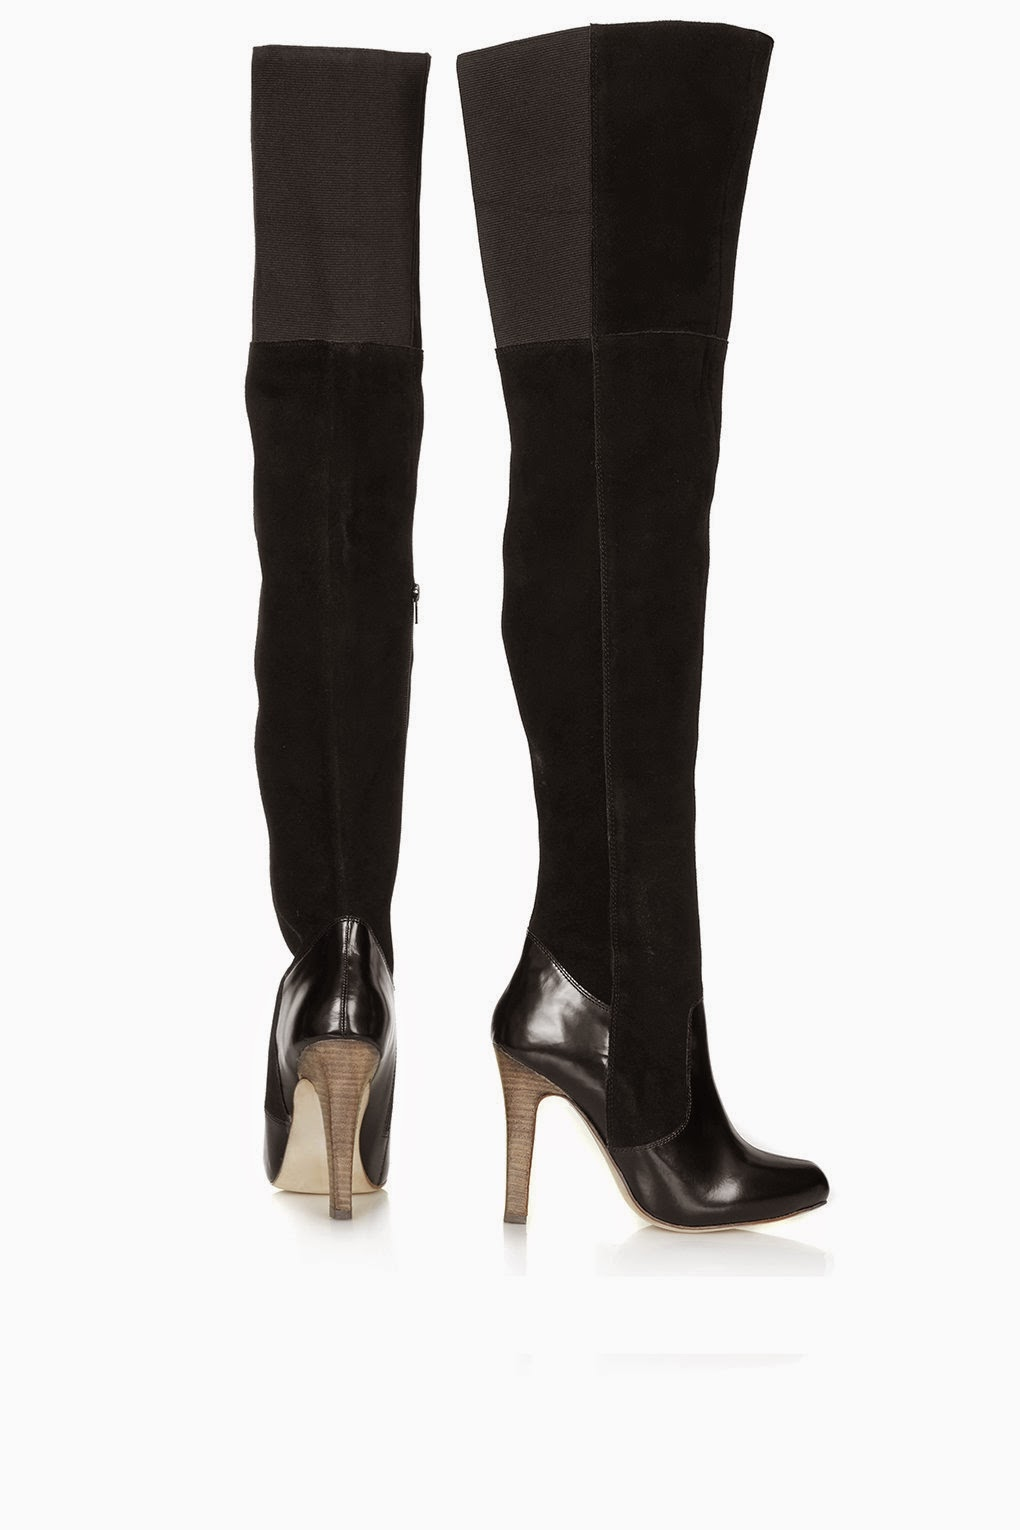 95d7fe80162a Need Want Now: Topshop thigh high boots... | KUIYA'S KLOSET